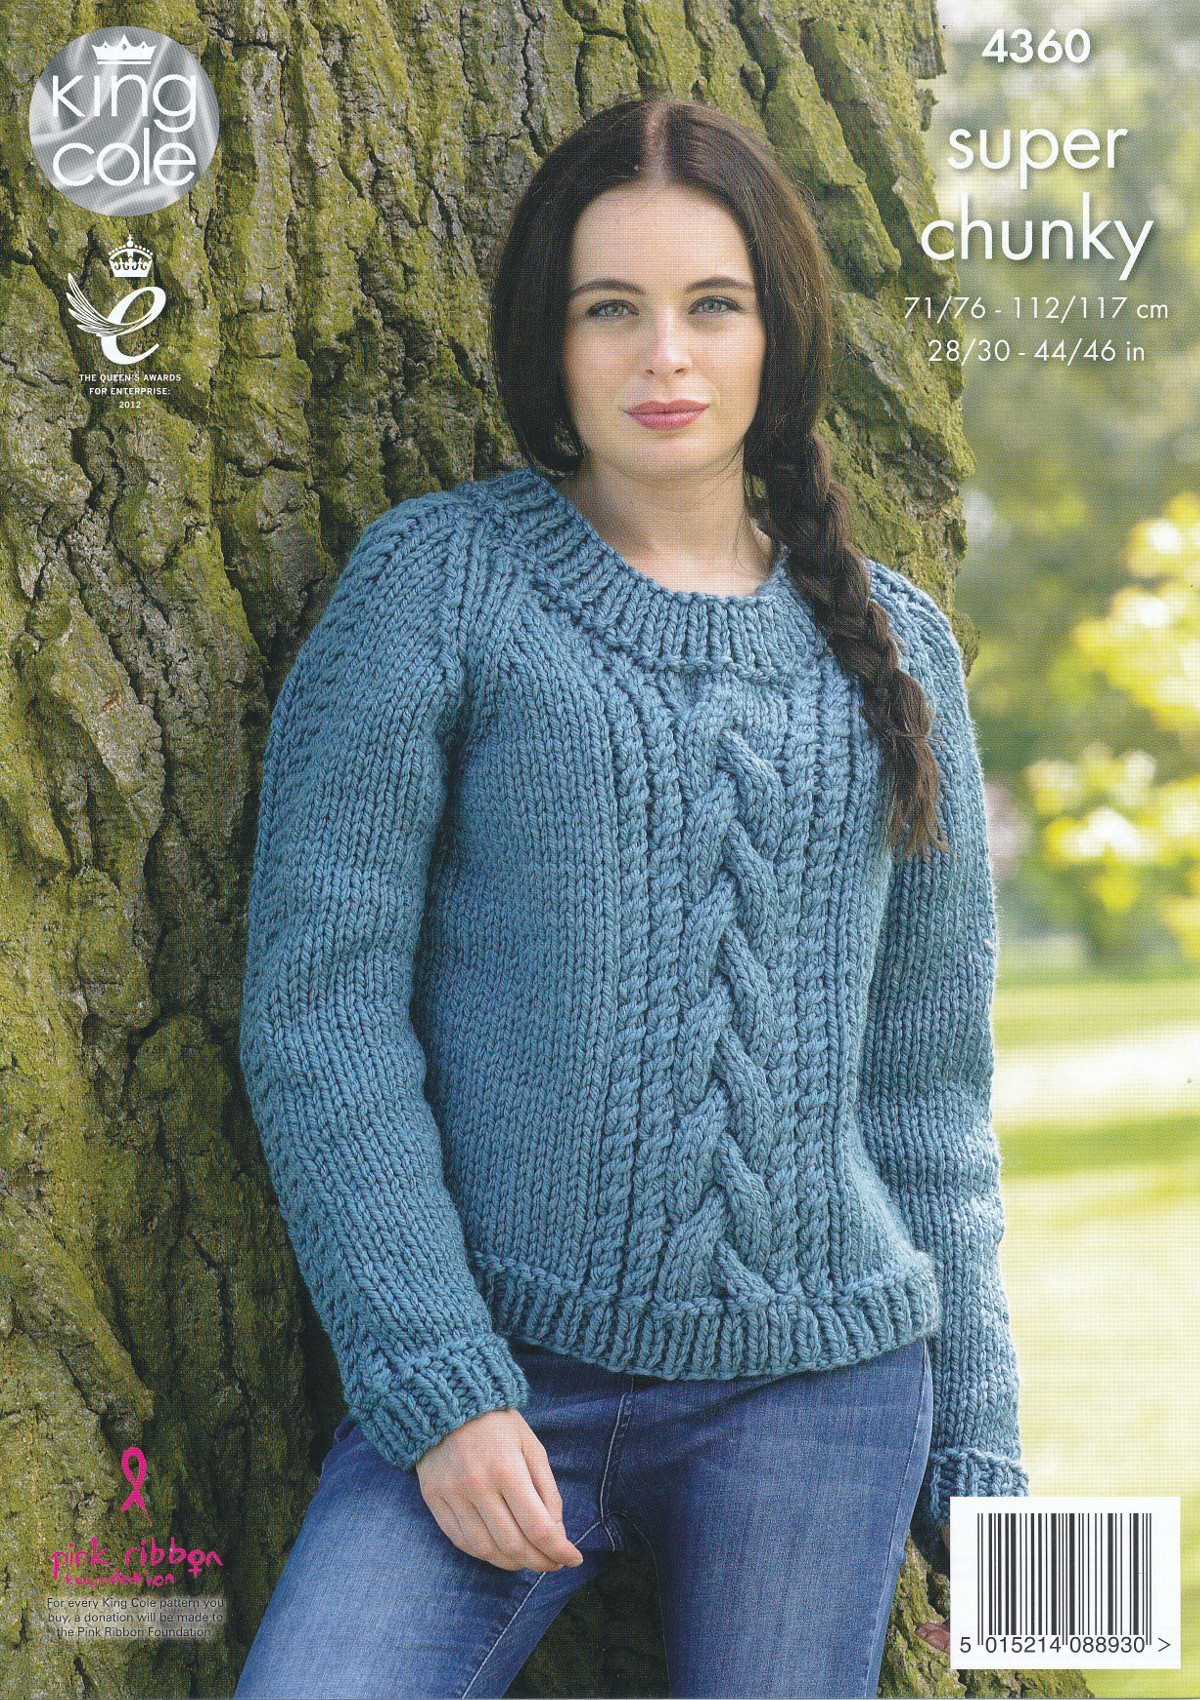 "Elegant La S Super Chunky Knitting Pattern King Cole Cable Knit Cable Knit Sweater Pattern Of New Lace & Cable Sweater Dk Wool 30"" 40"" Knitting Cable Knit Sweater Pattern"